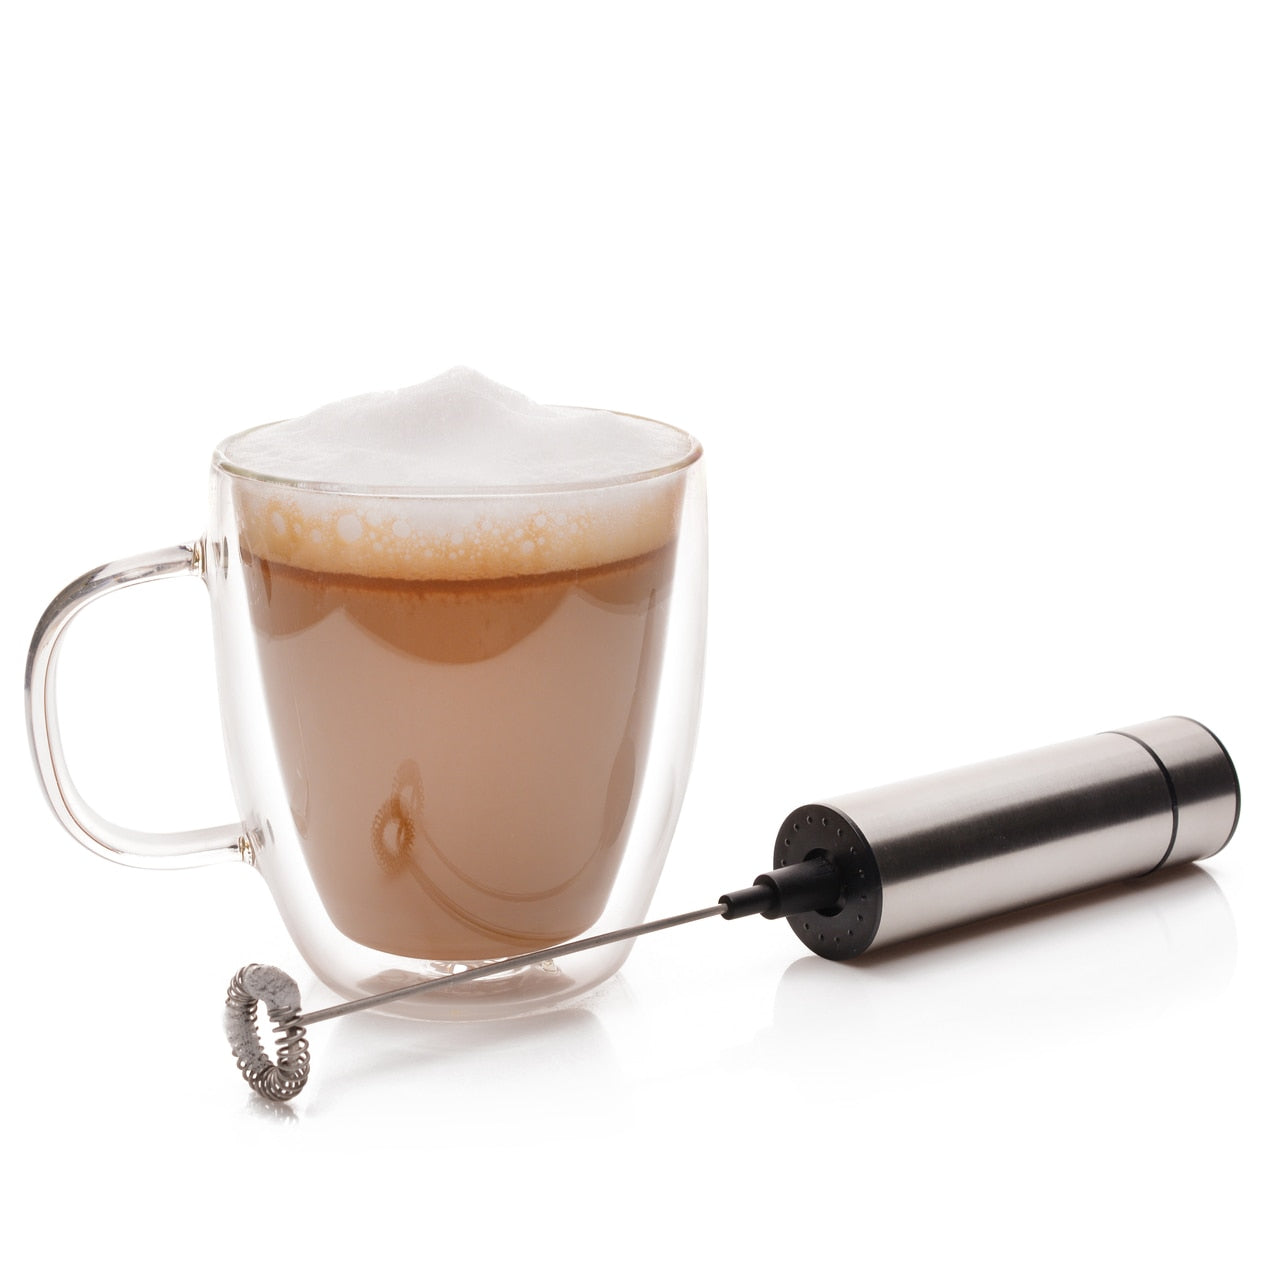 Professional Milk Frother and mug